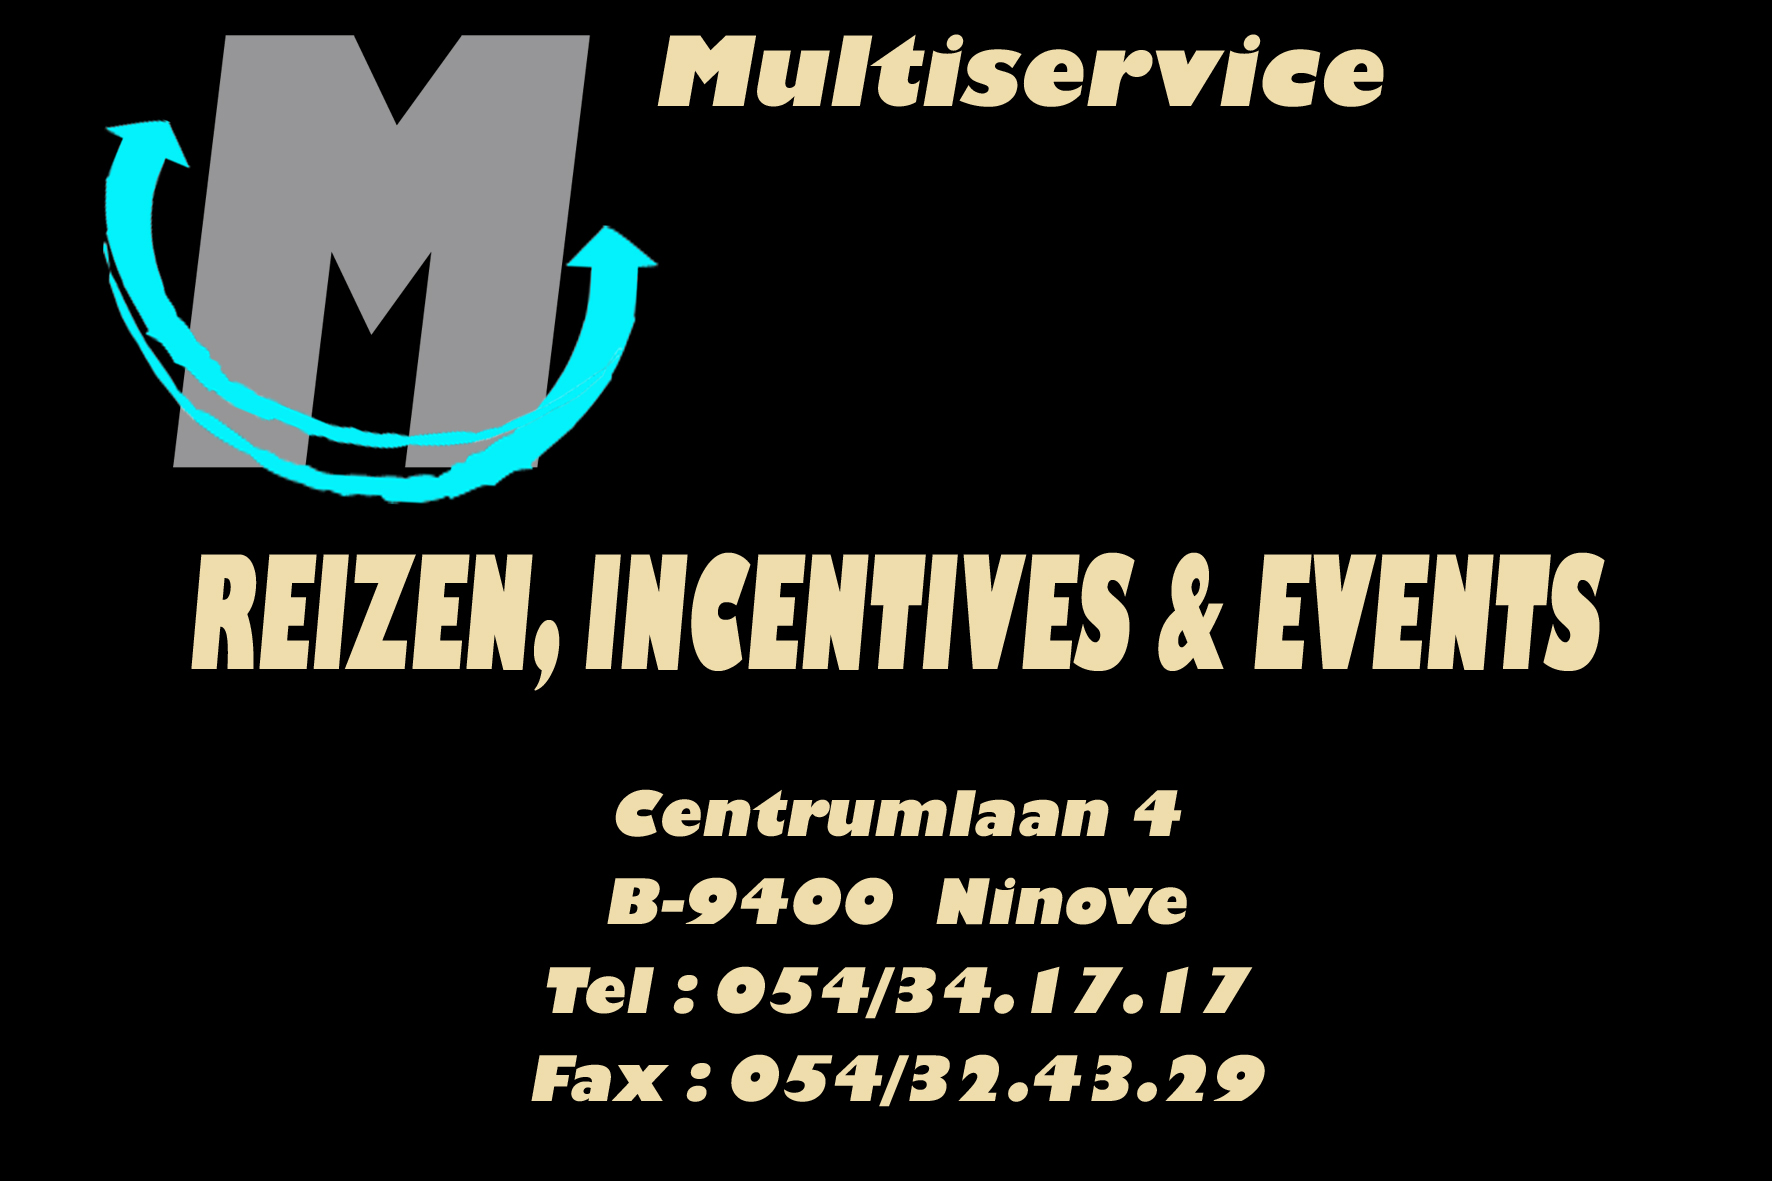 Multiserviceburo NV